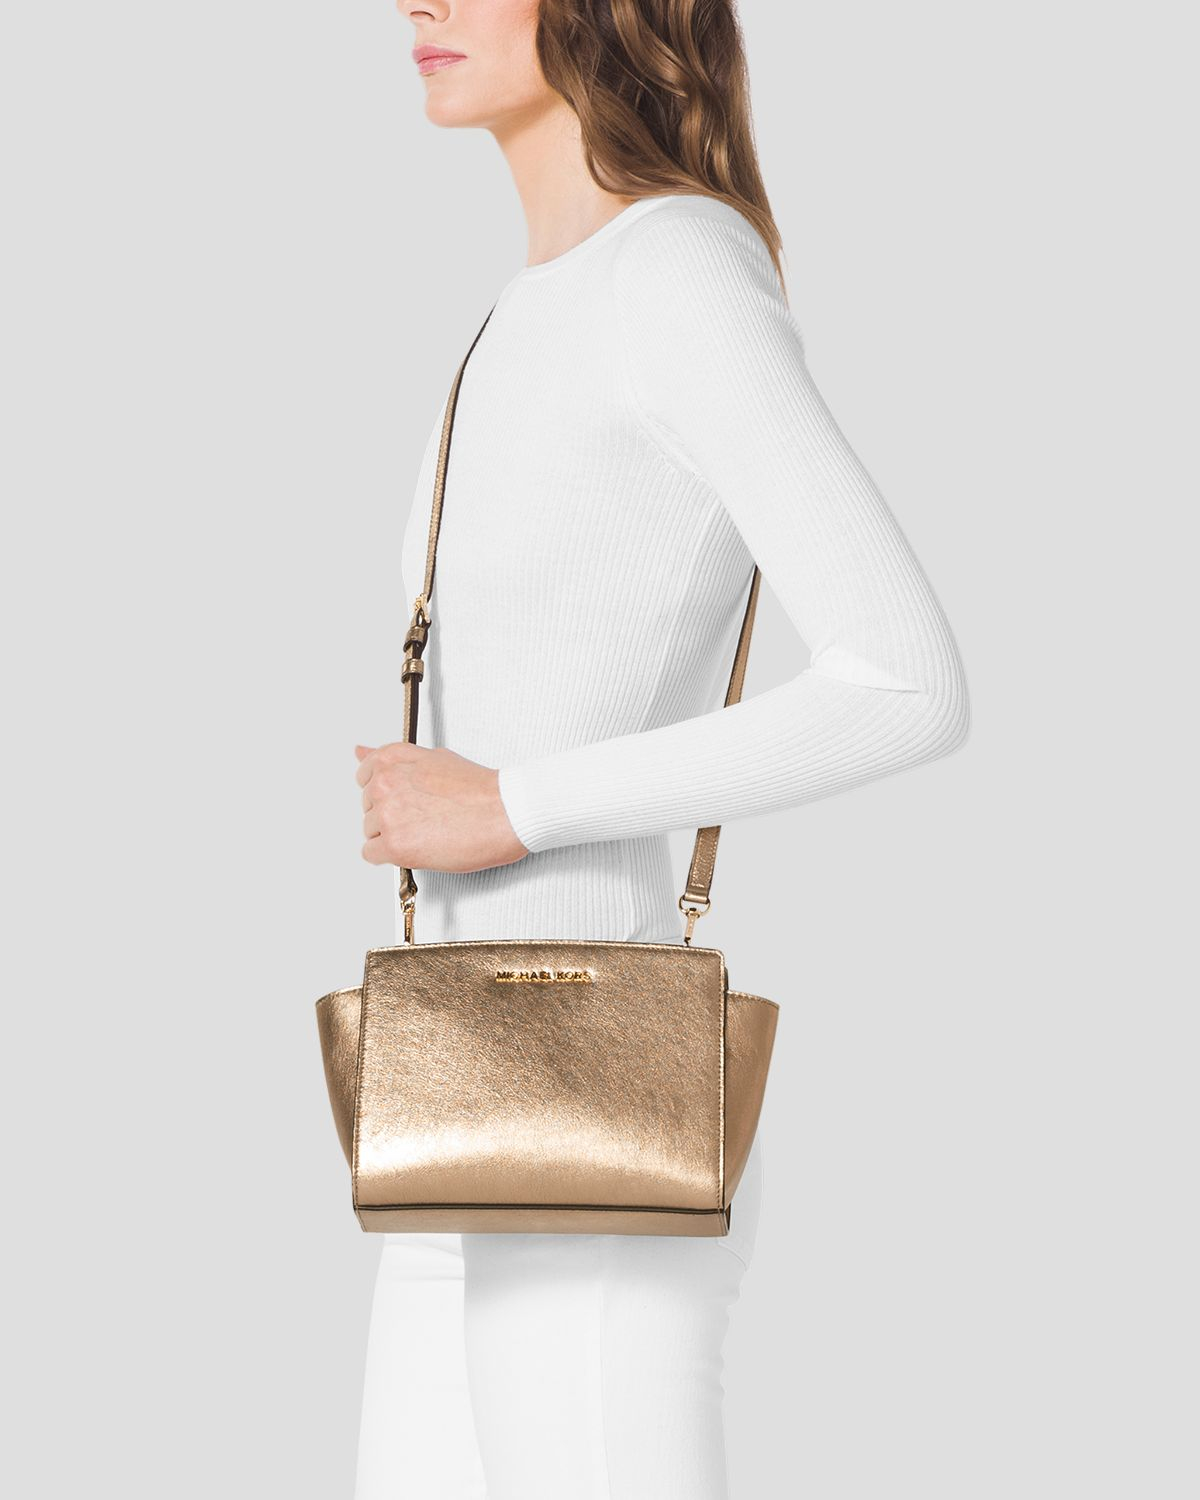 387567a95909 Gallery. Previously sold at: Bloomingdale's · Women's Michael By Michael  Kors Selma